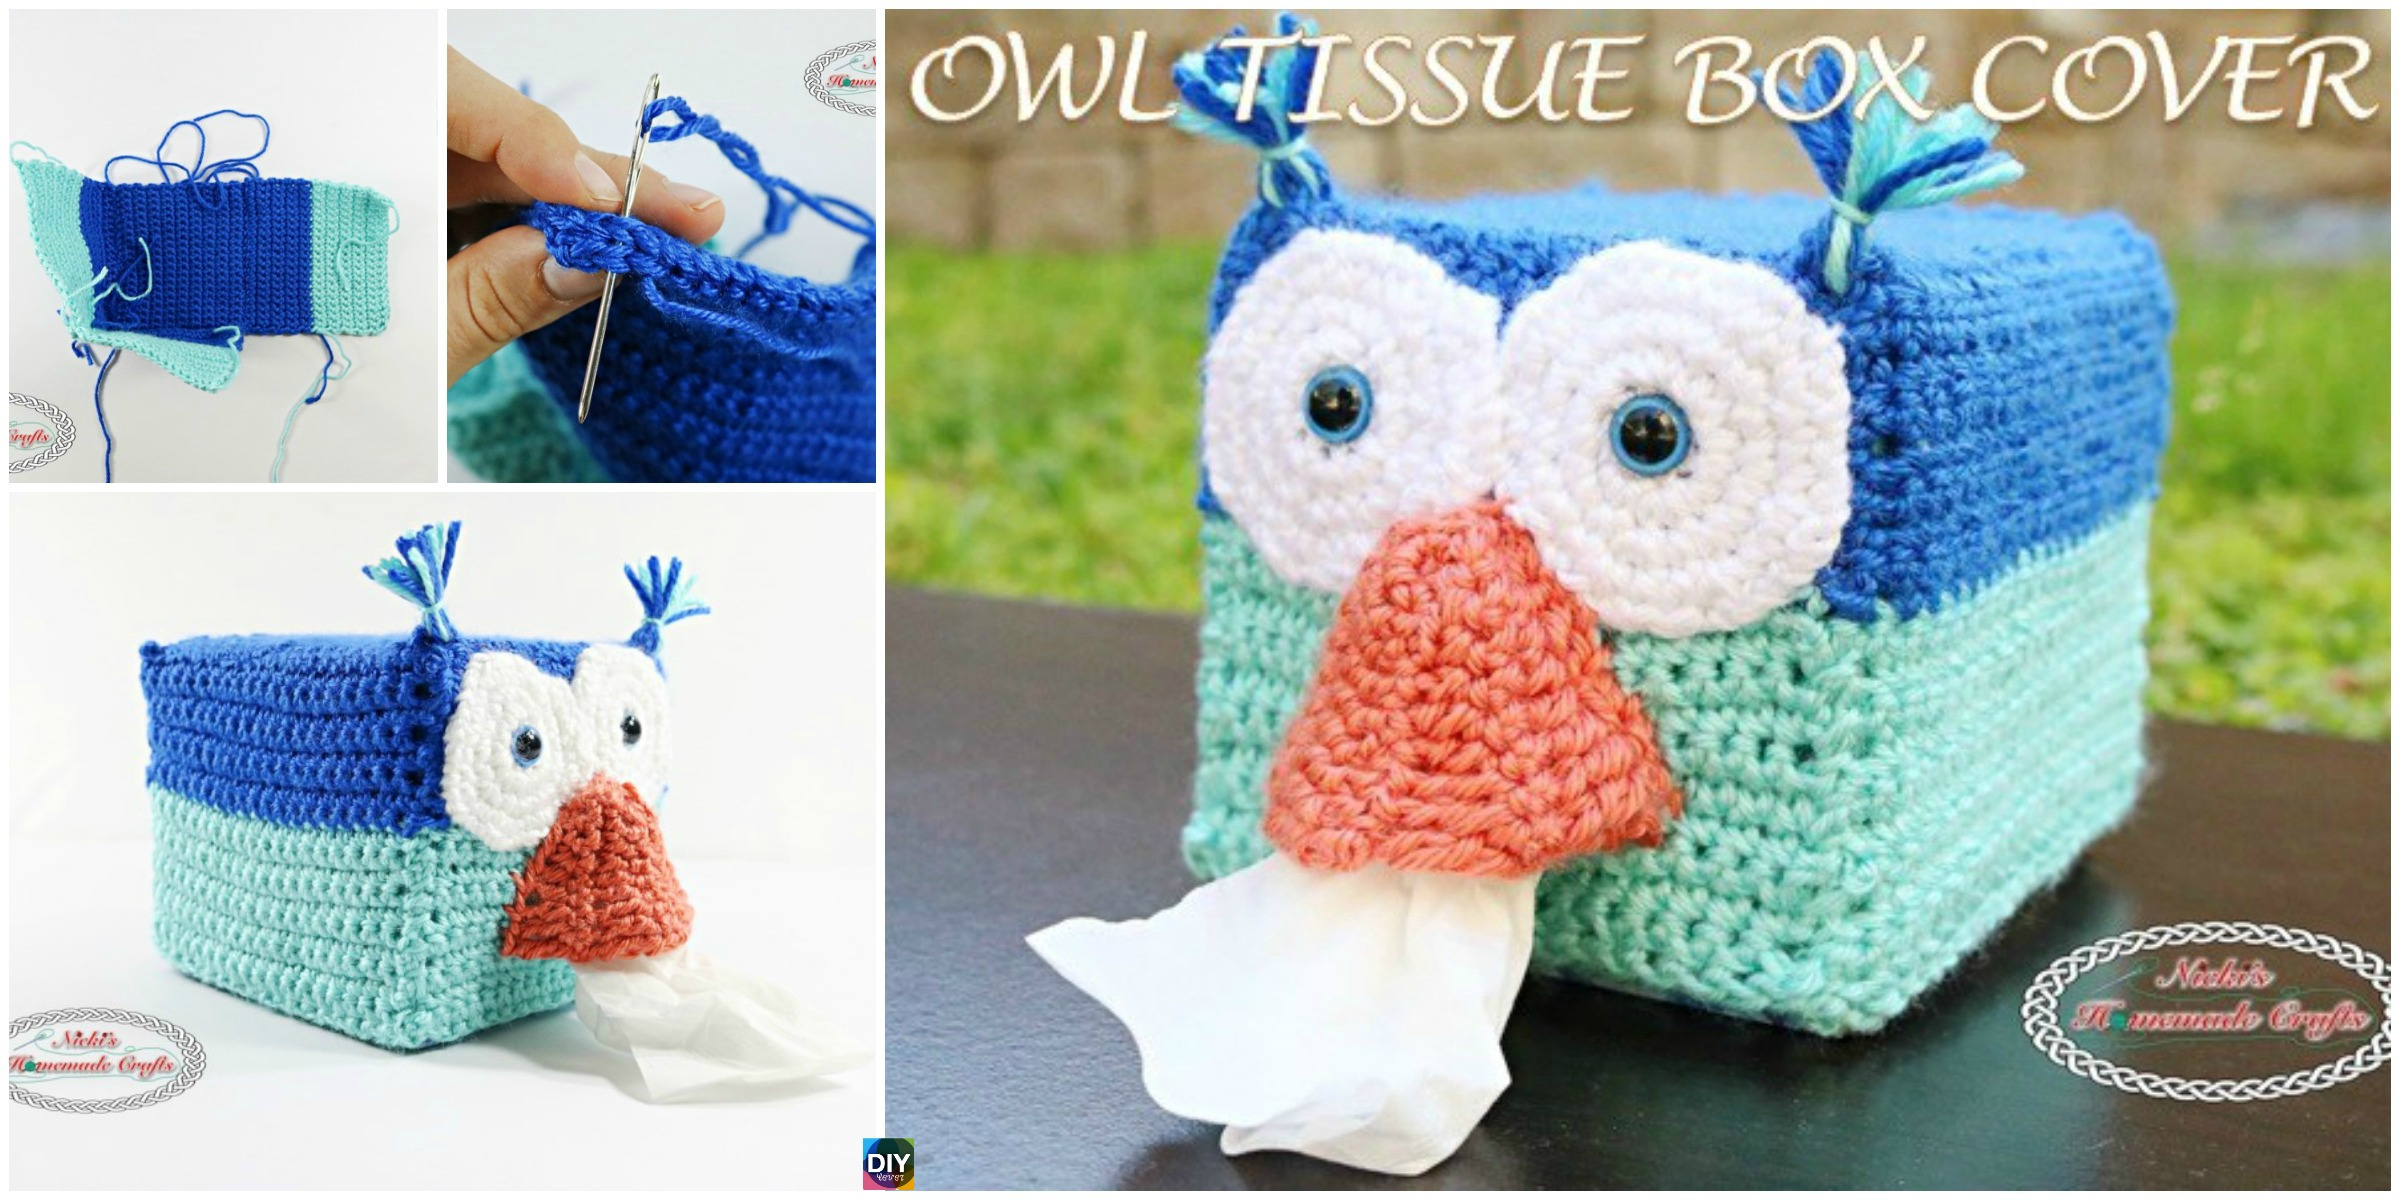 Crochet Owl Tissue Box Cover – Free Pattern - DIY 4 EVER